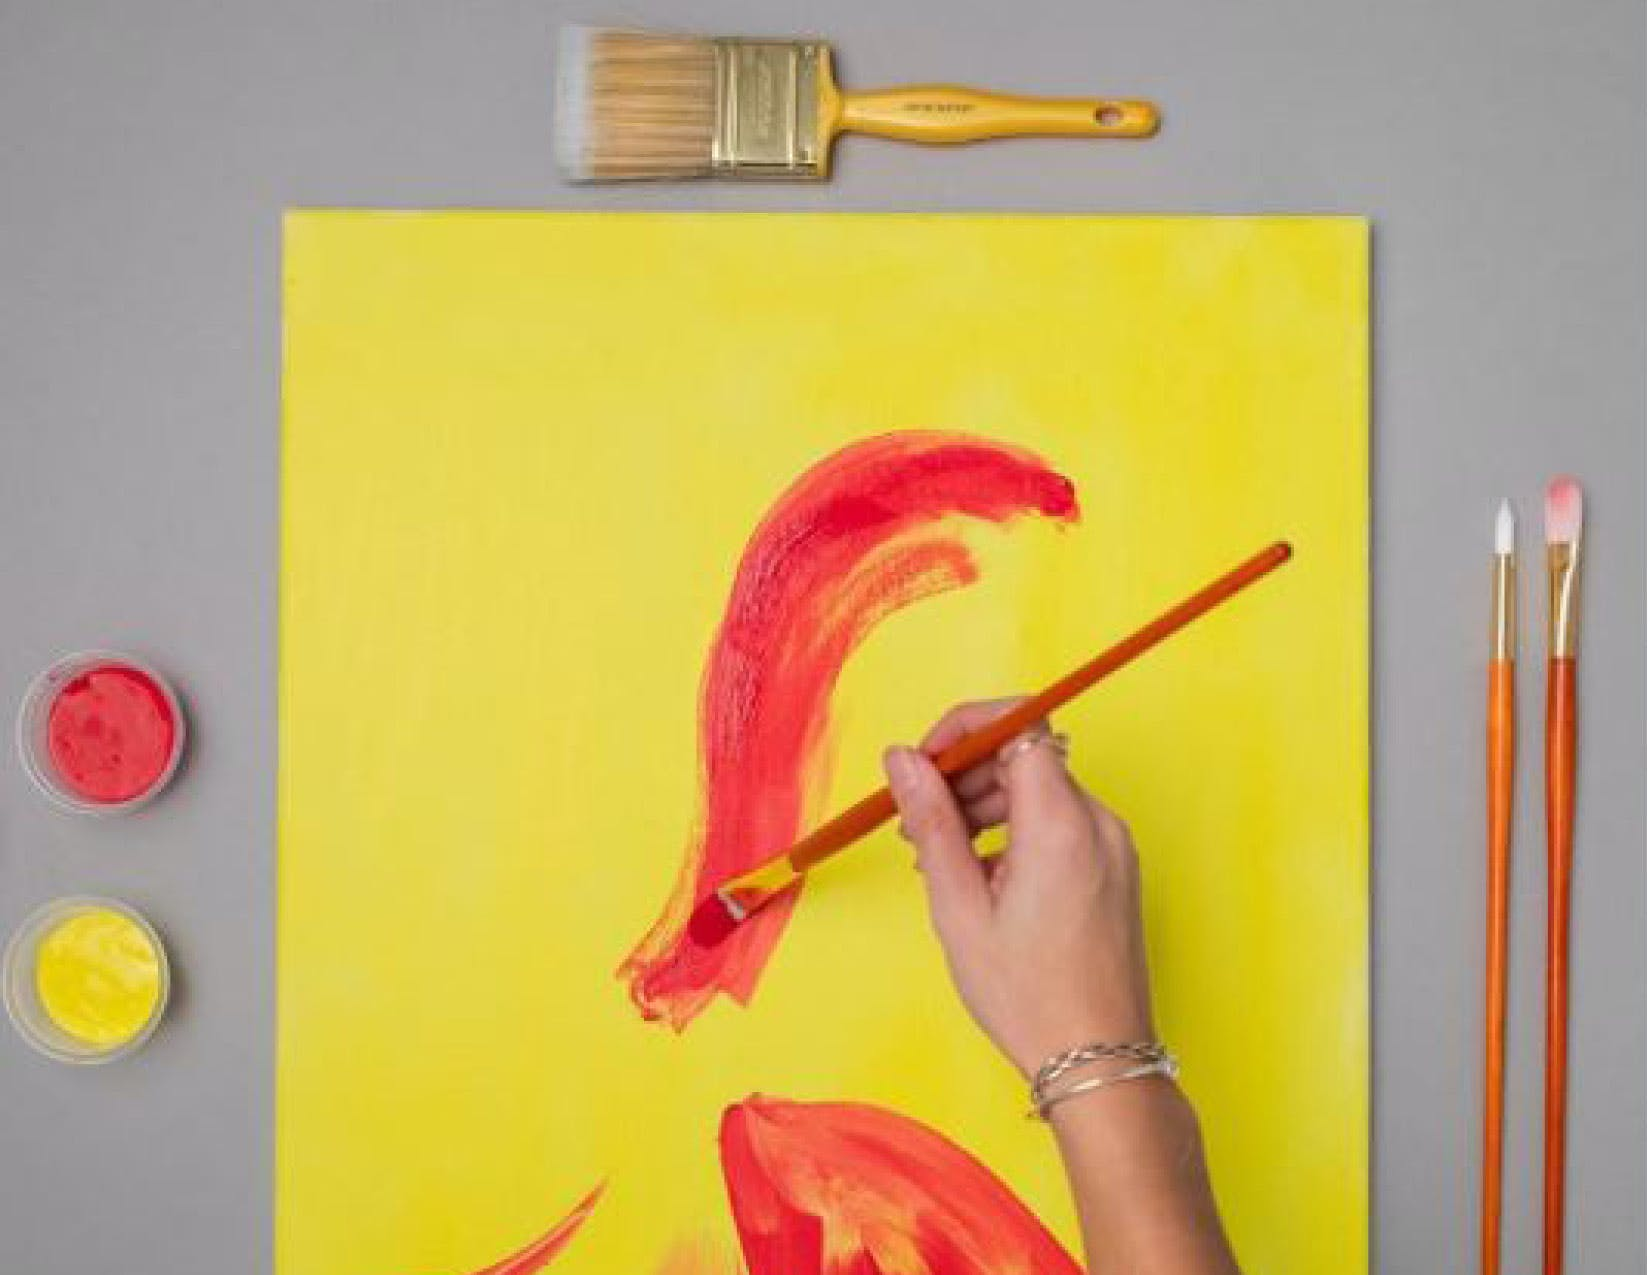 a person painting on a yellow paper